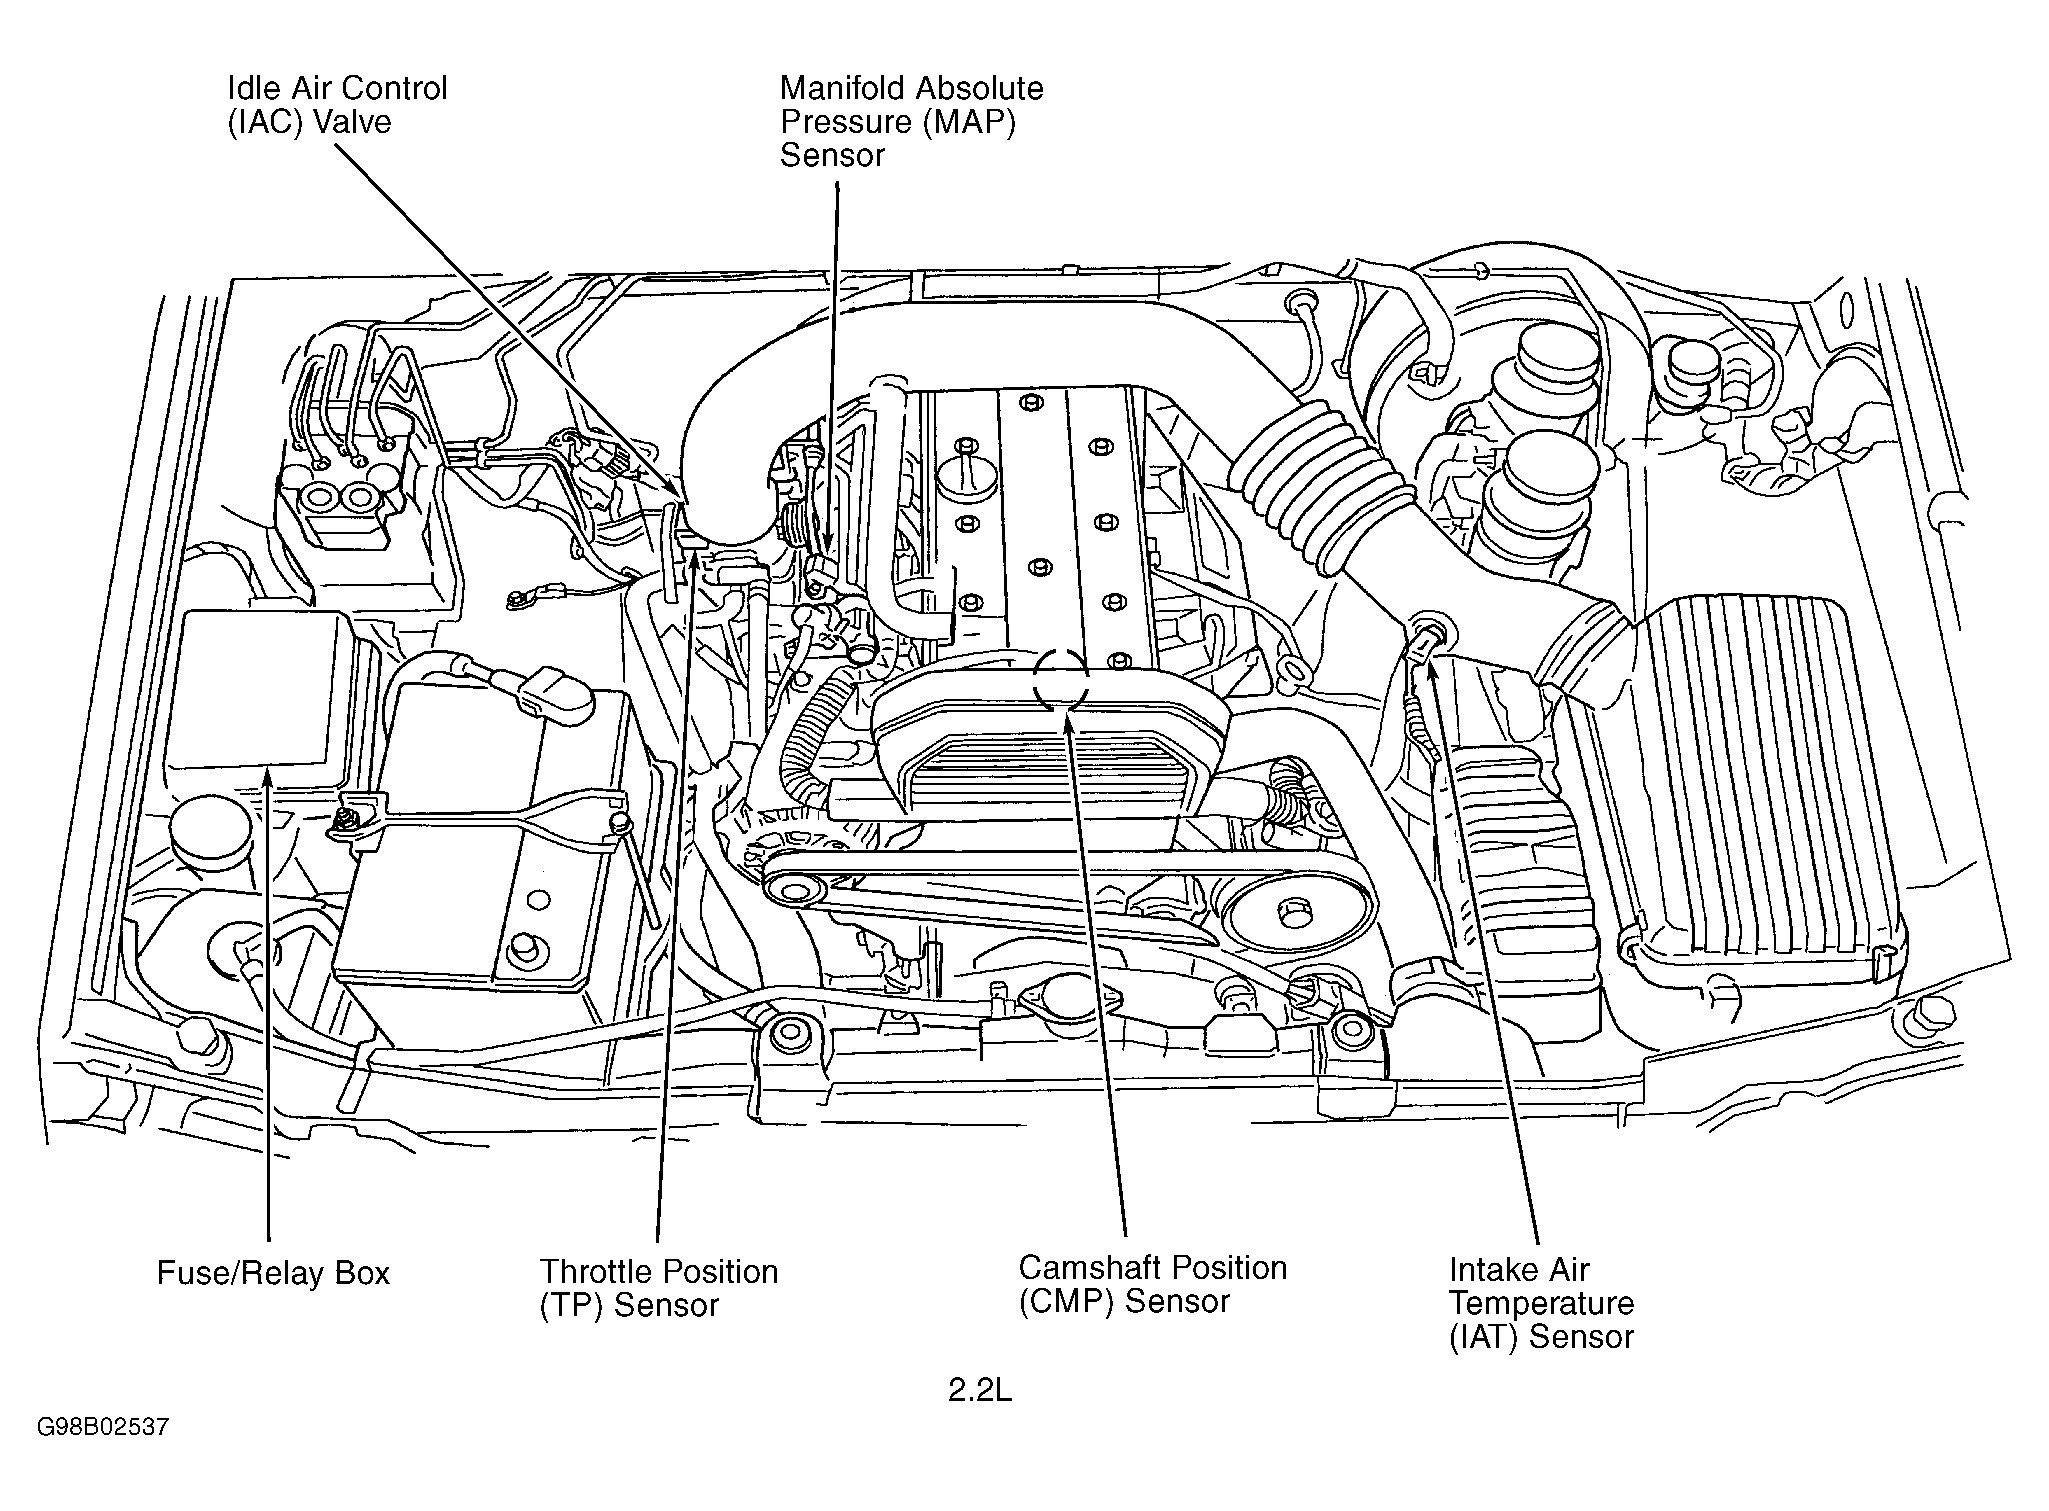 2000 Isuzu Rodeo Fuel Pump Wiring Diagram from dantuckerautos.com